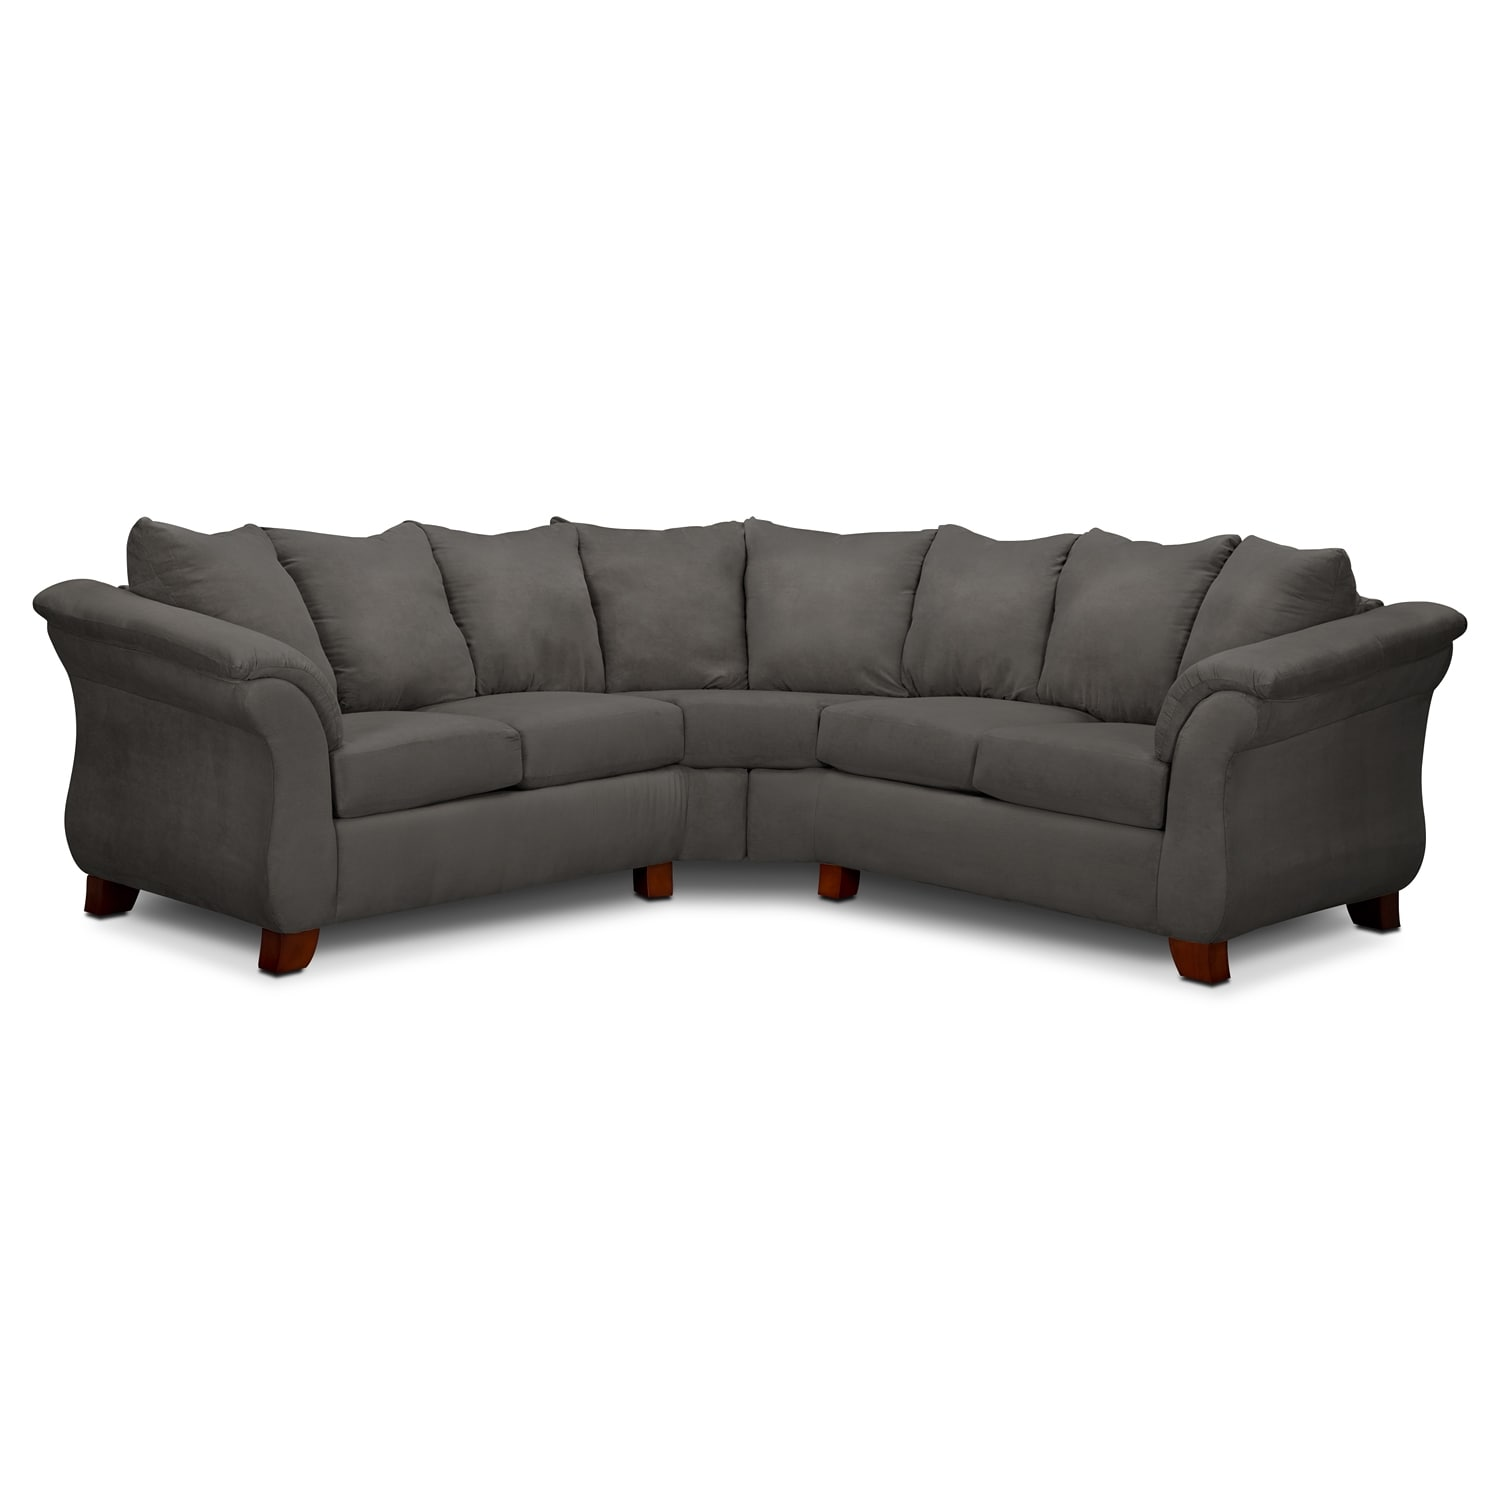 Living Room Furniture - Adrian Graphite II 2 Pc. Sectional